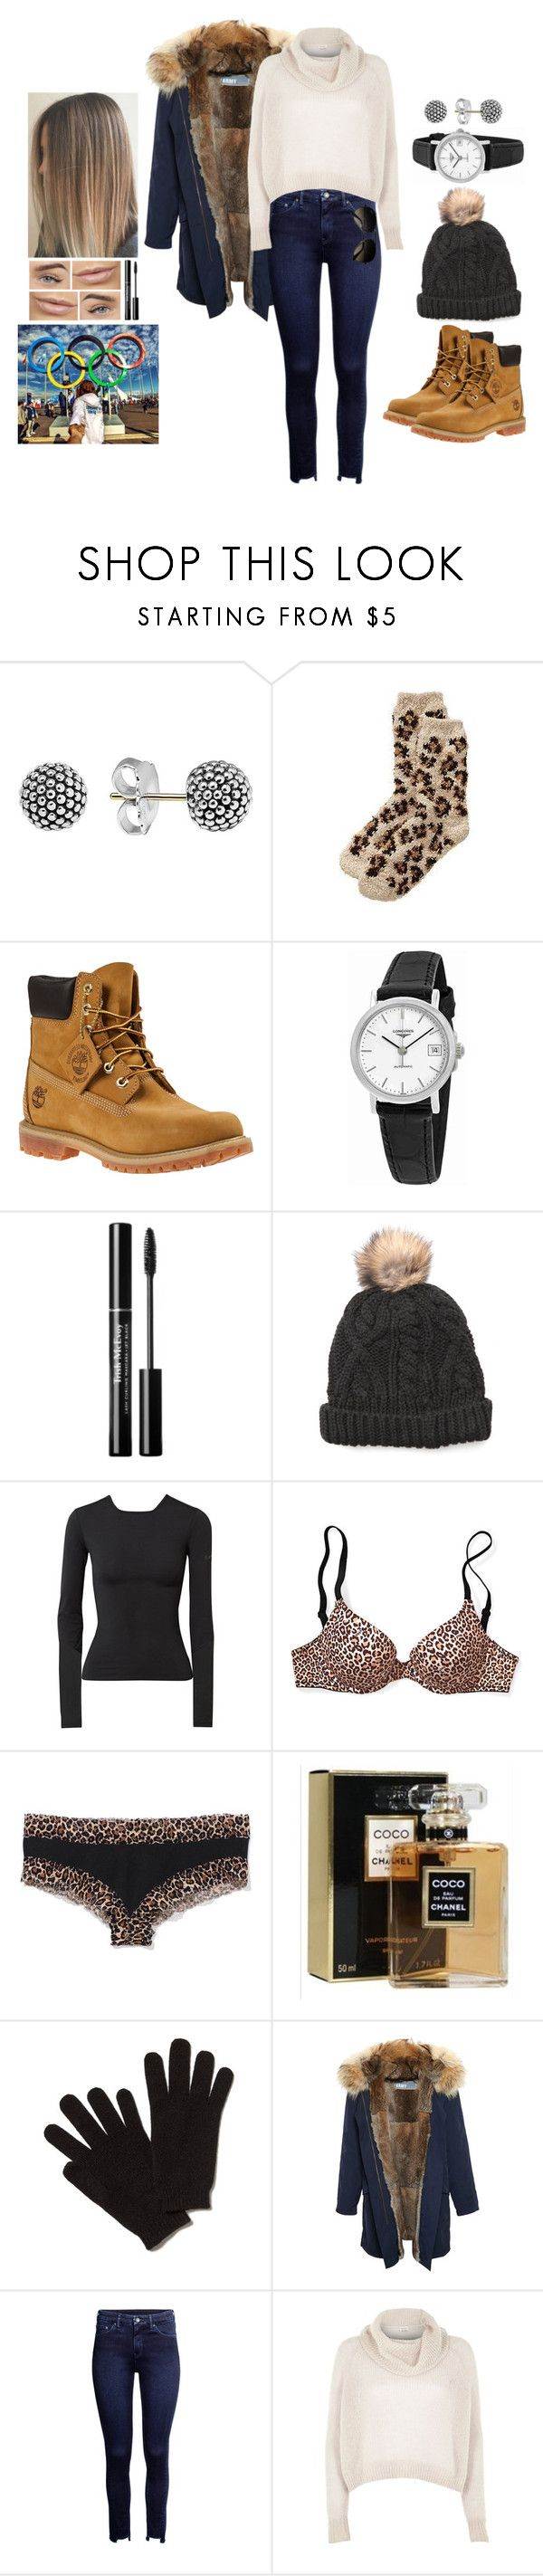 """""""Reminder From Sochi, Russia 🇷🇺"""" by teodoramaria98 ❤ liked on Polyvore featuring Murad, Lagos, Old Navy, Timberland, Longines, NIKE, Victoria's Secret PINK, Chanel, Yves Salomon and River Island"""